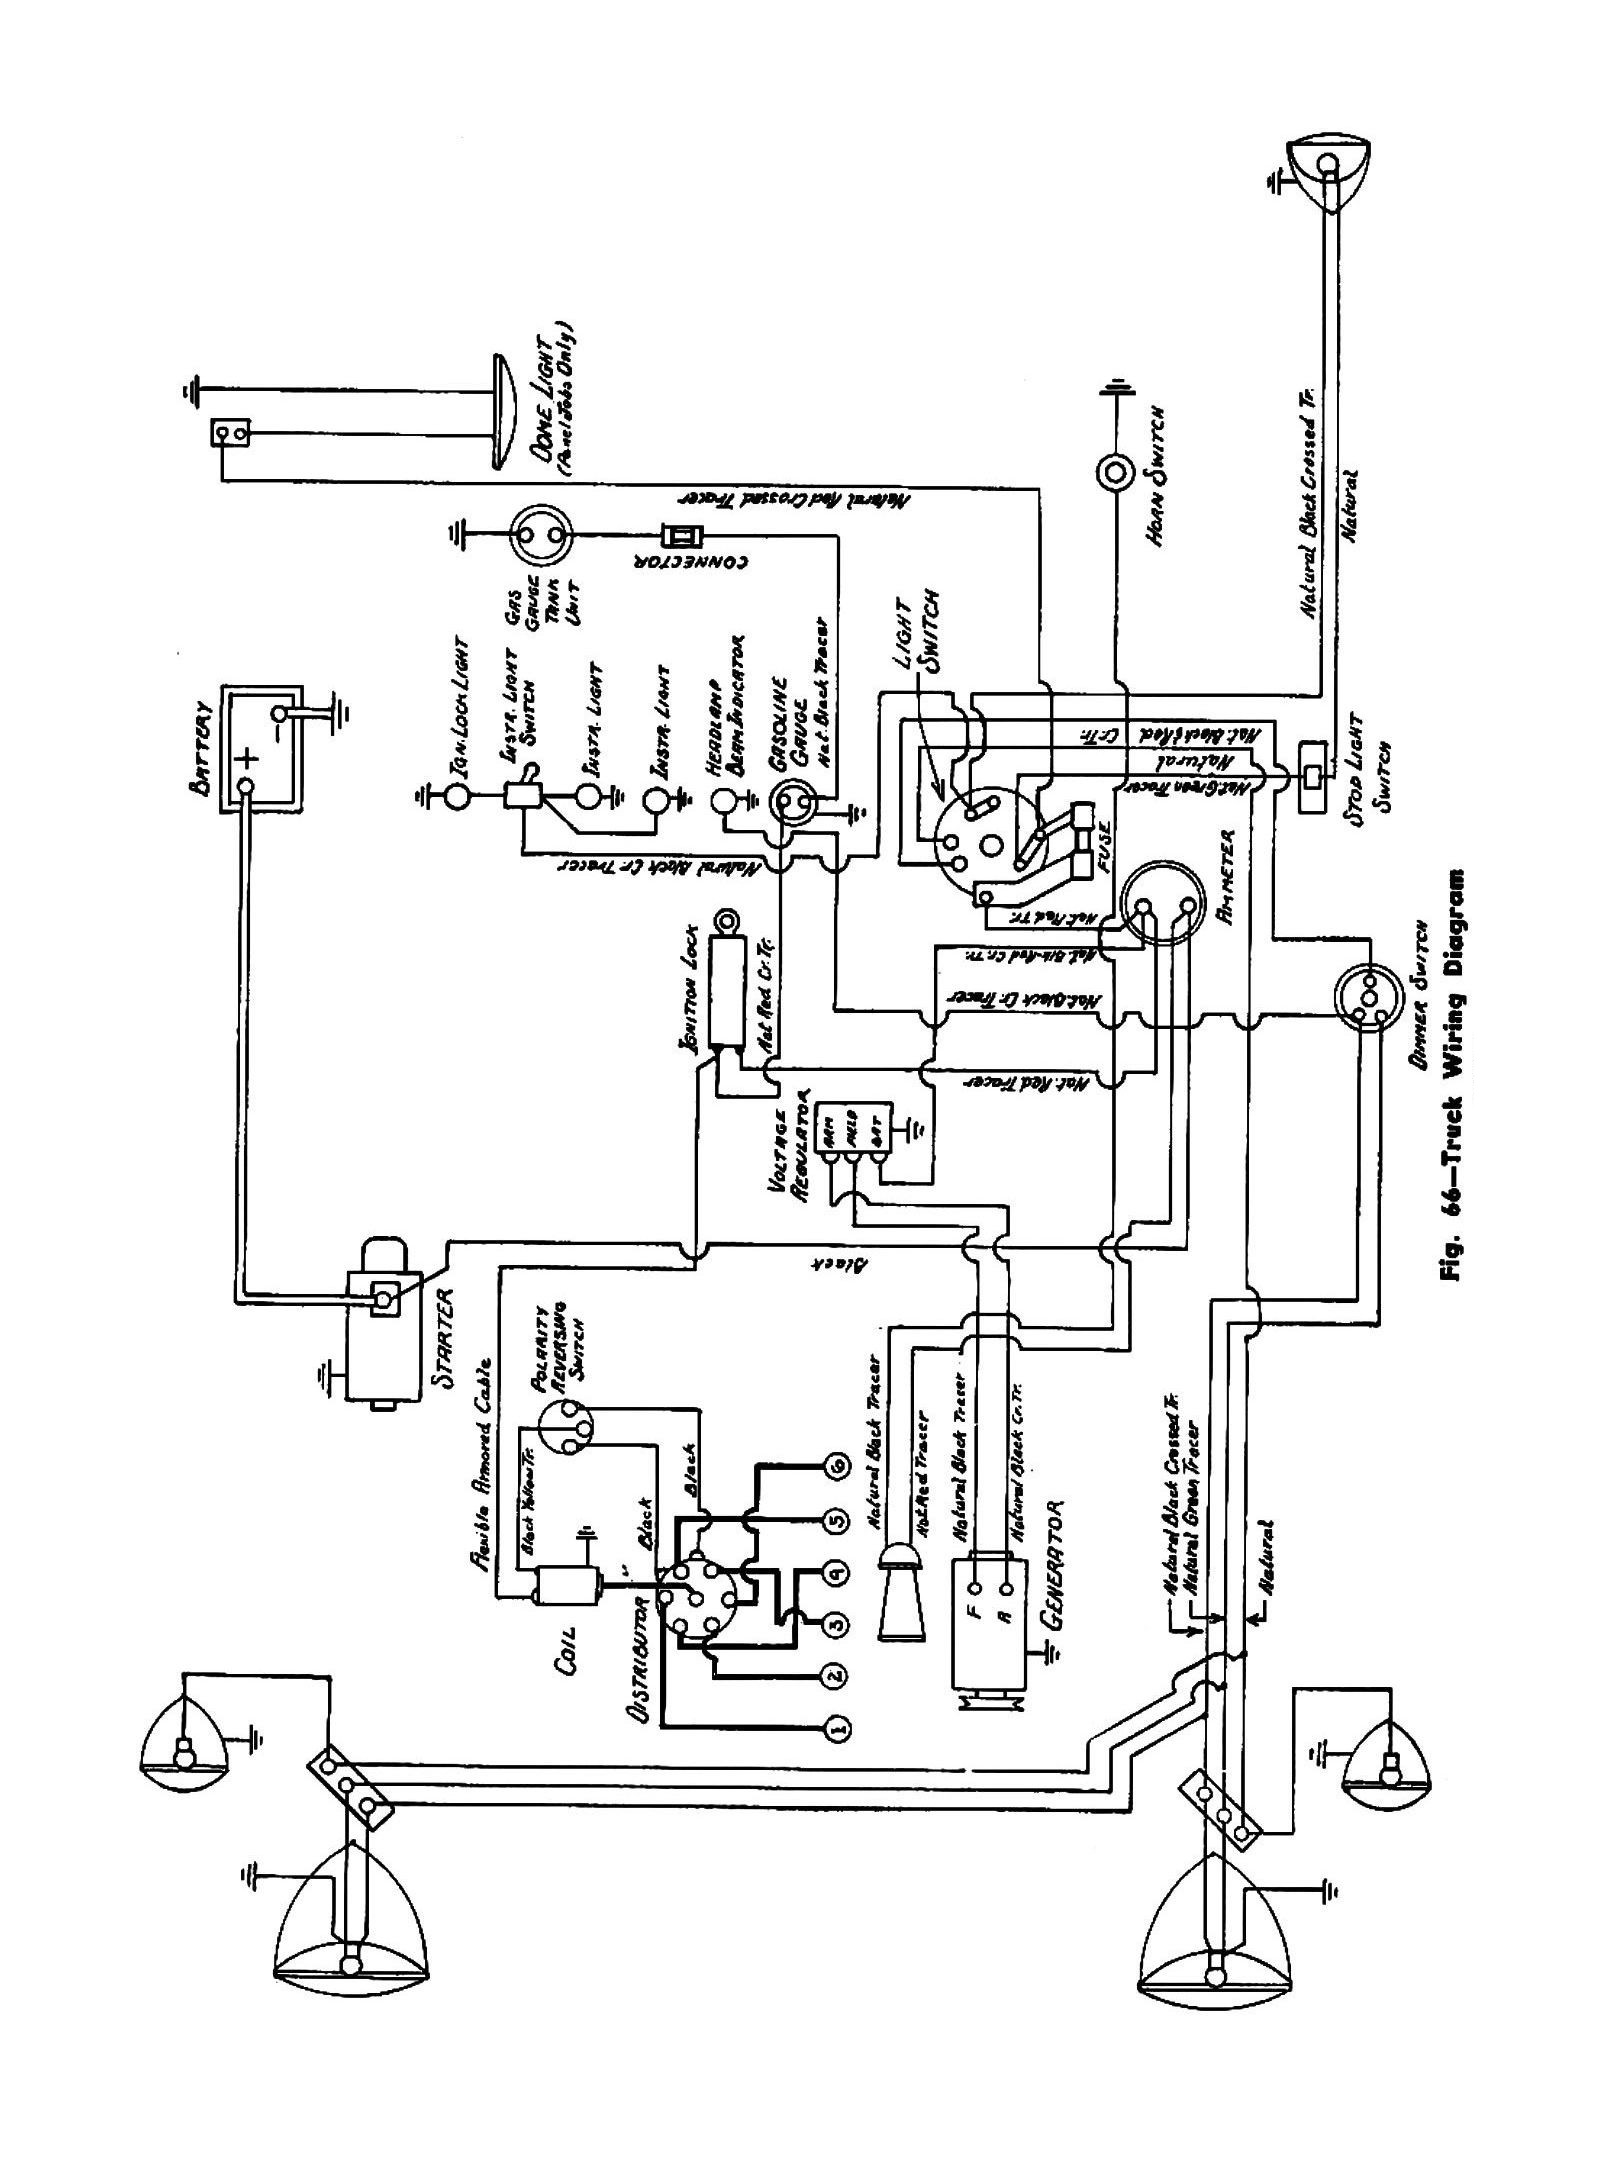 45truck truck wiring diagrams truck wiring diagrams instruction gm truck wiring harness at bayanpartner.co